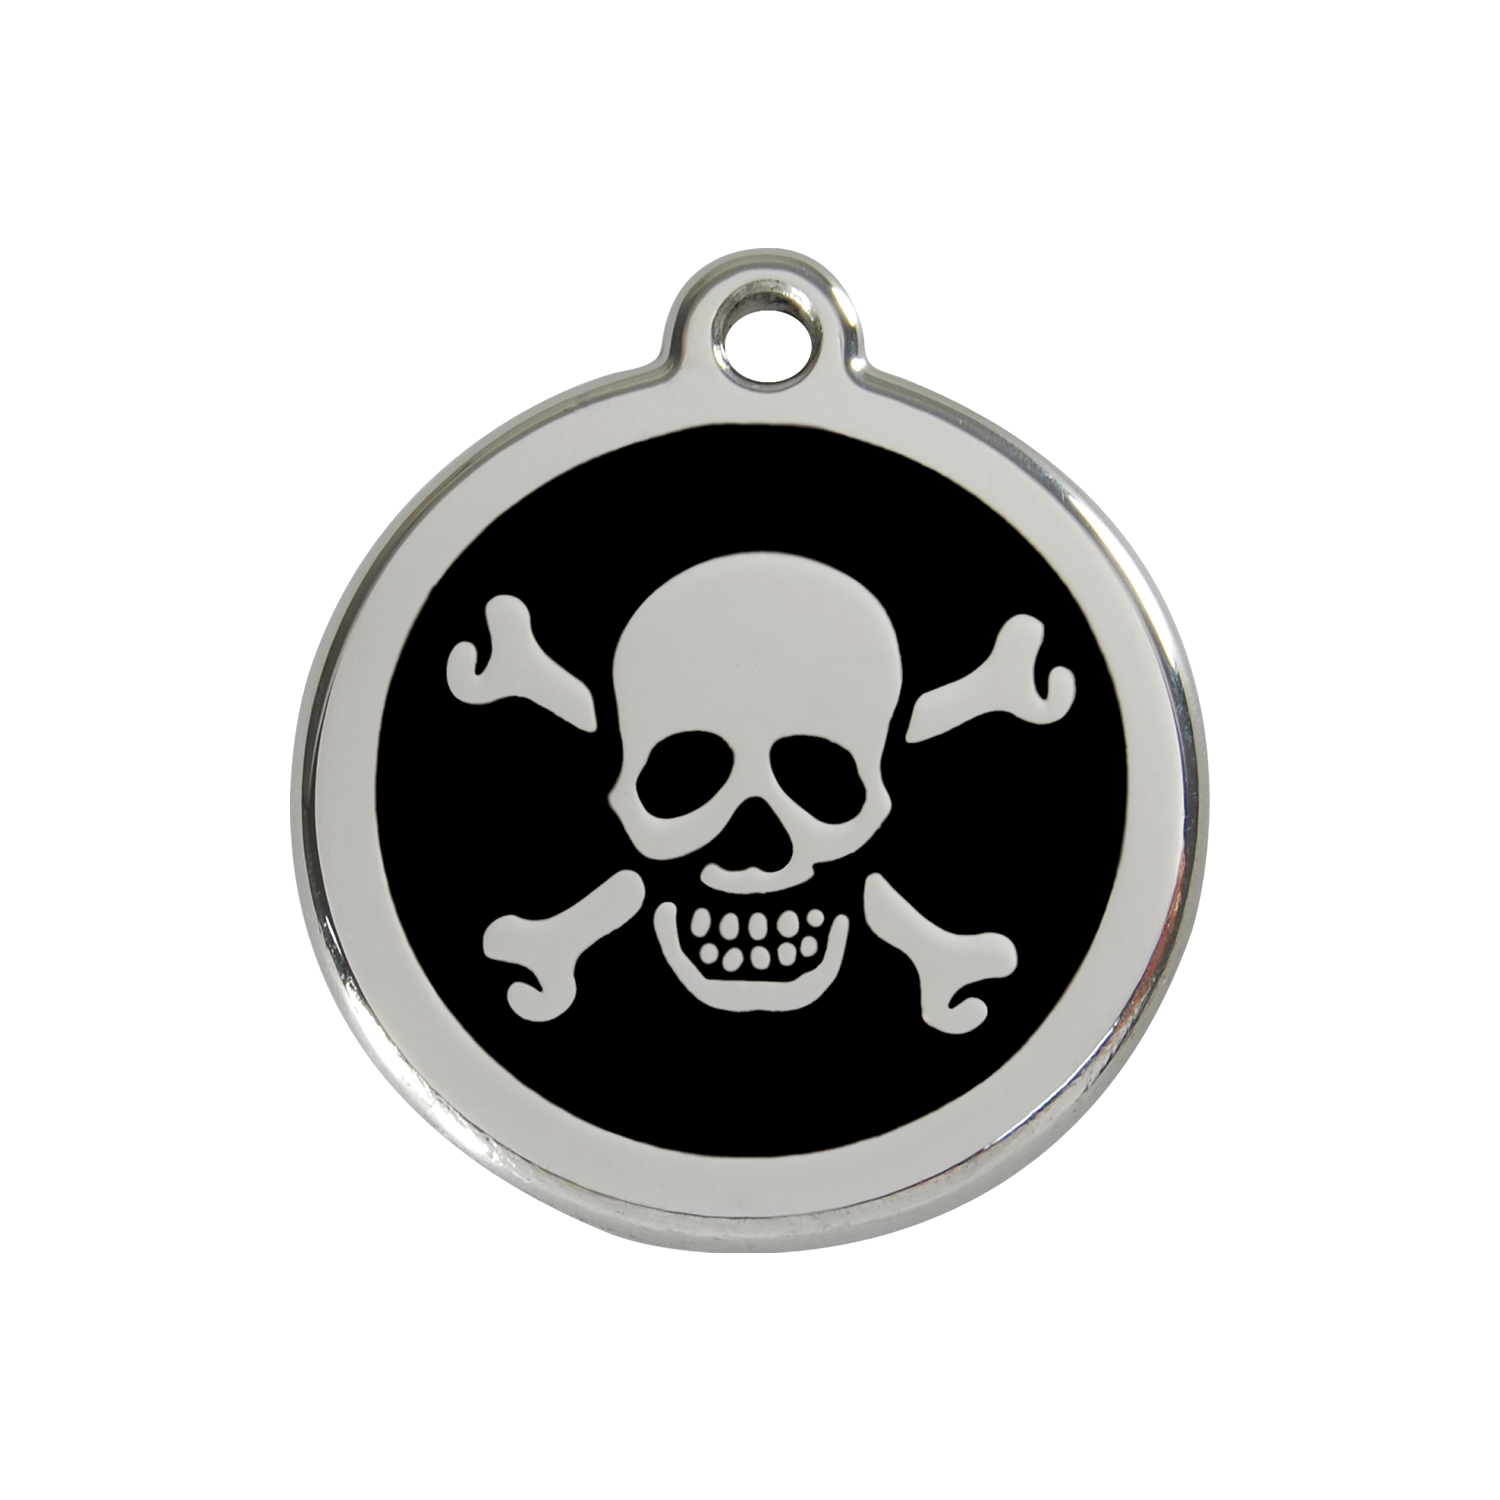 Black Skull & Cross Bones Medium Enamel & Stainless Steel Tag>